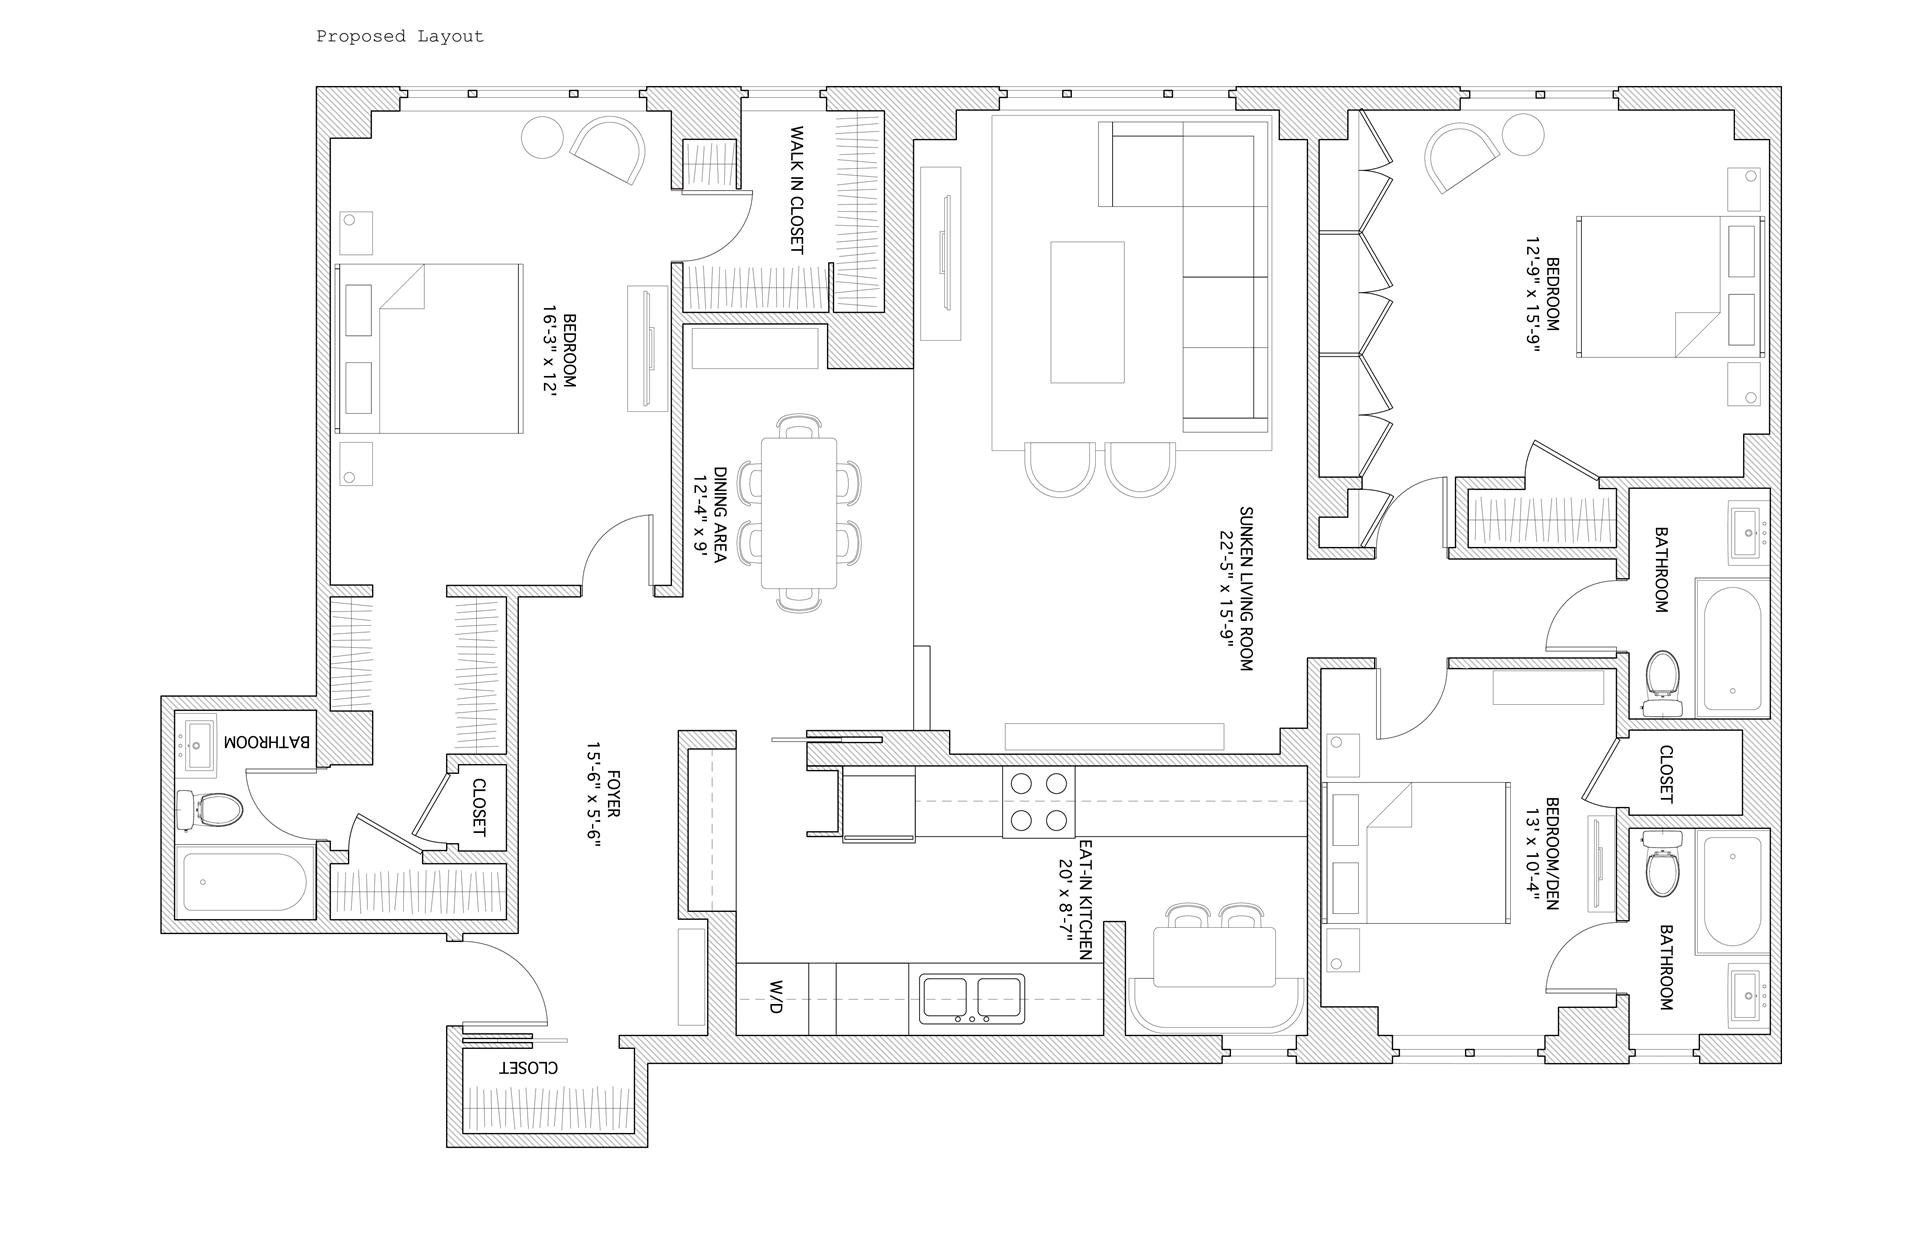 Floor plan of 400 East 52nd St, 6A - Sutton Area, New York